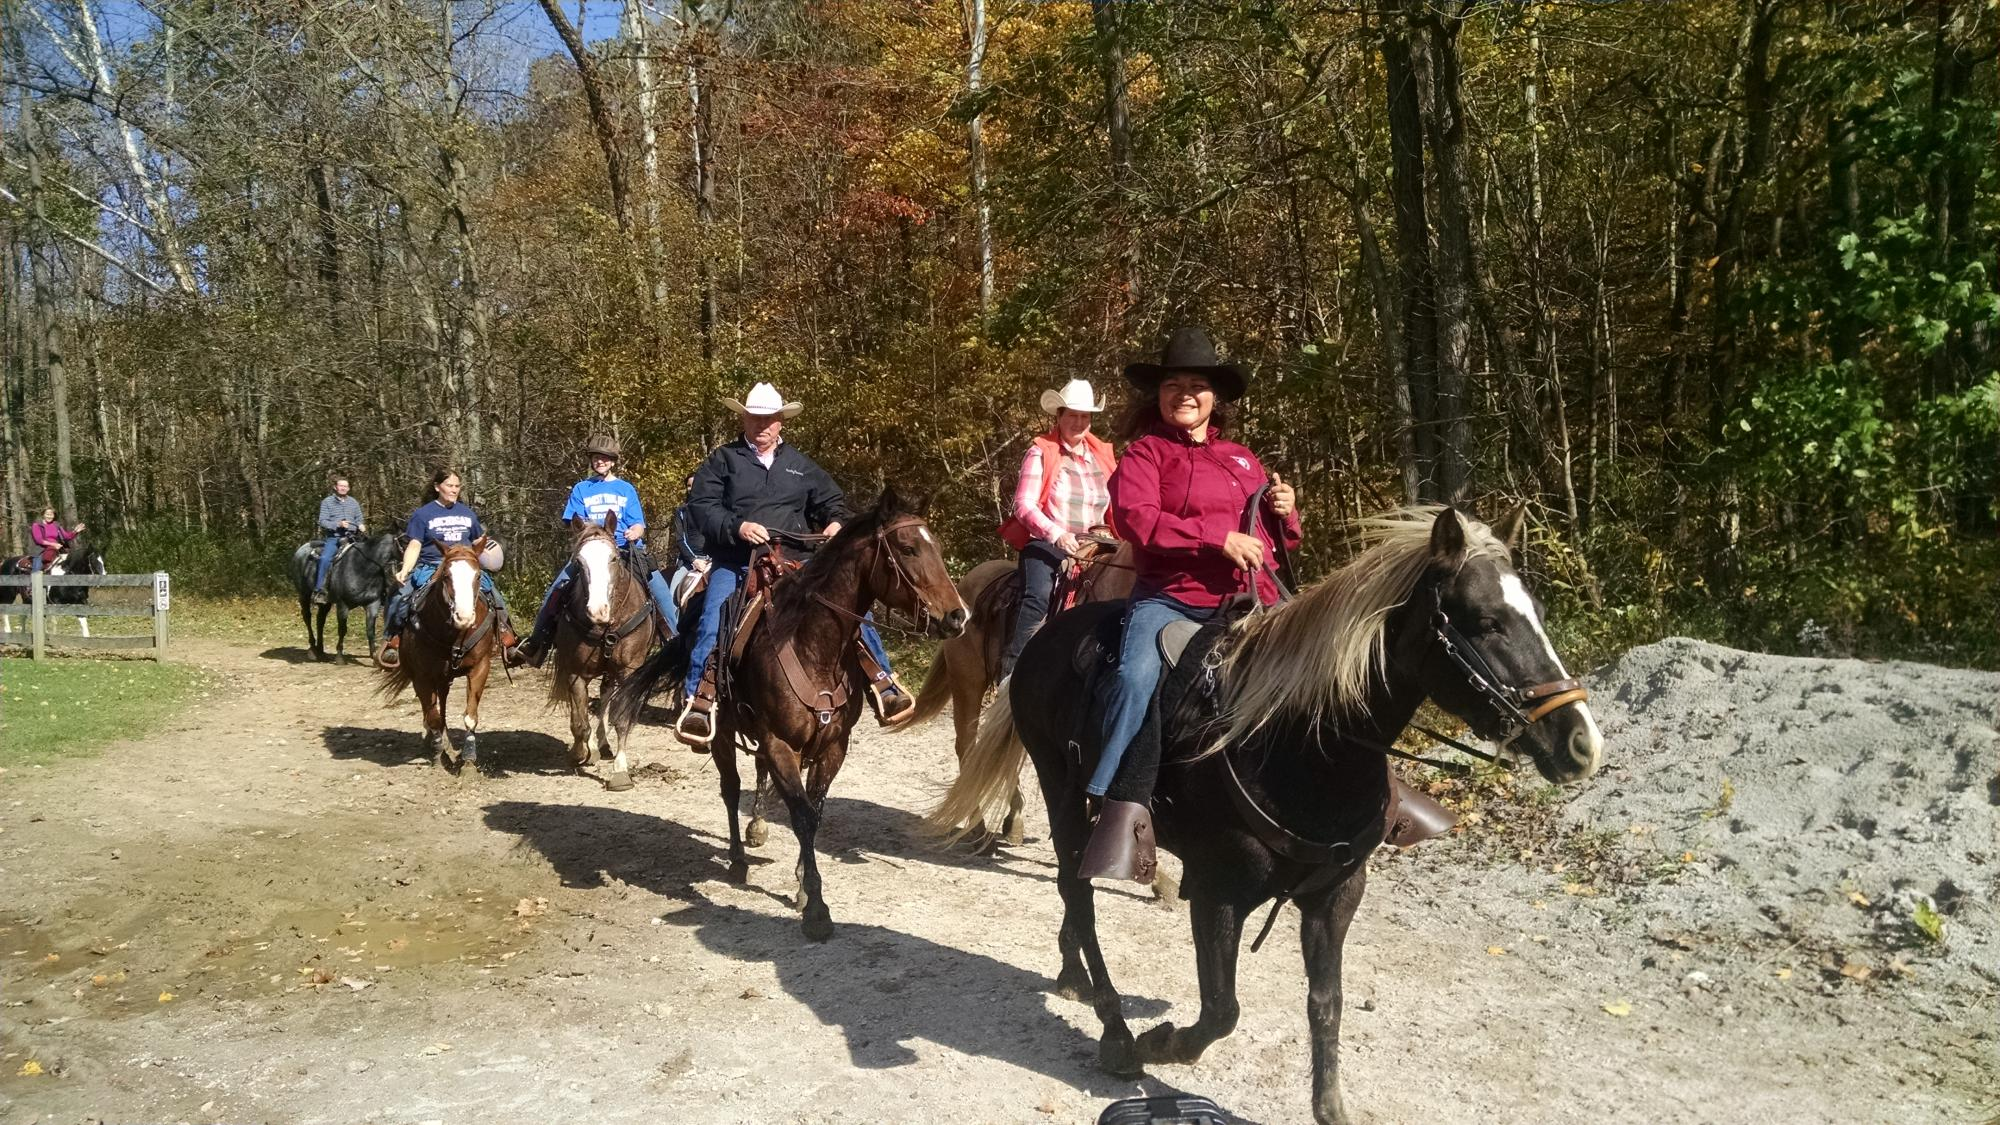 Riders who join the Trail Club receive discounted trail rides